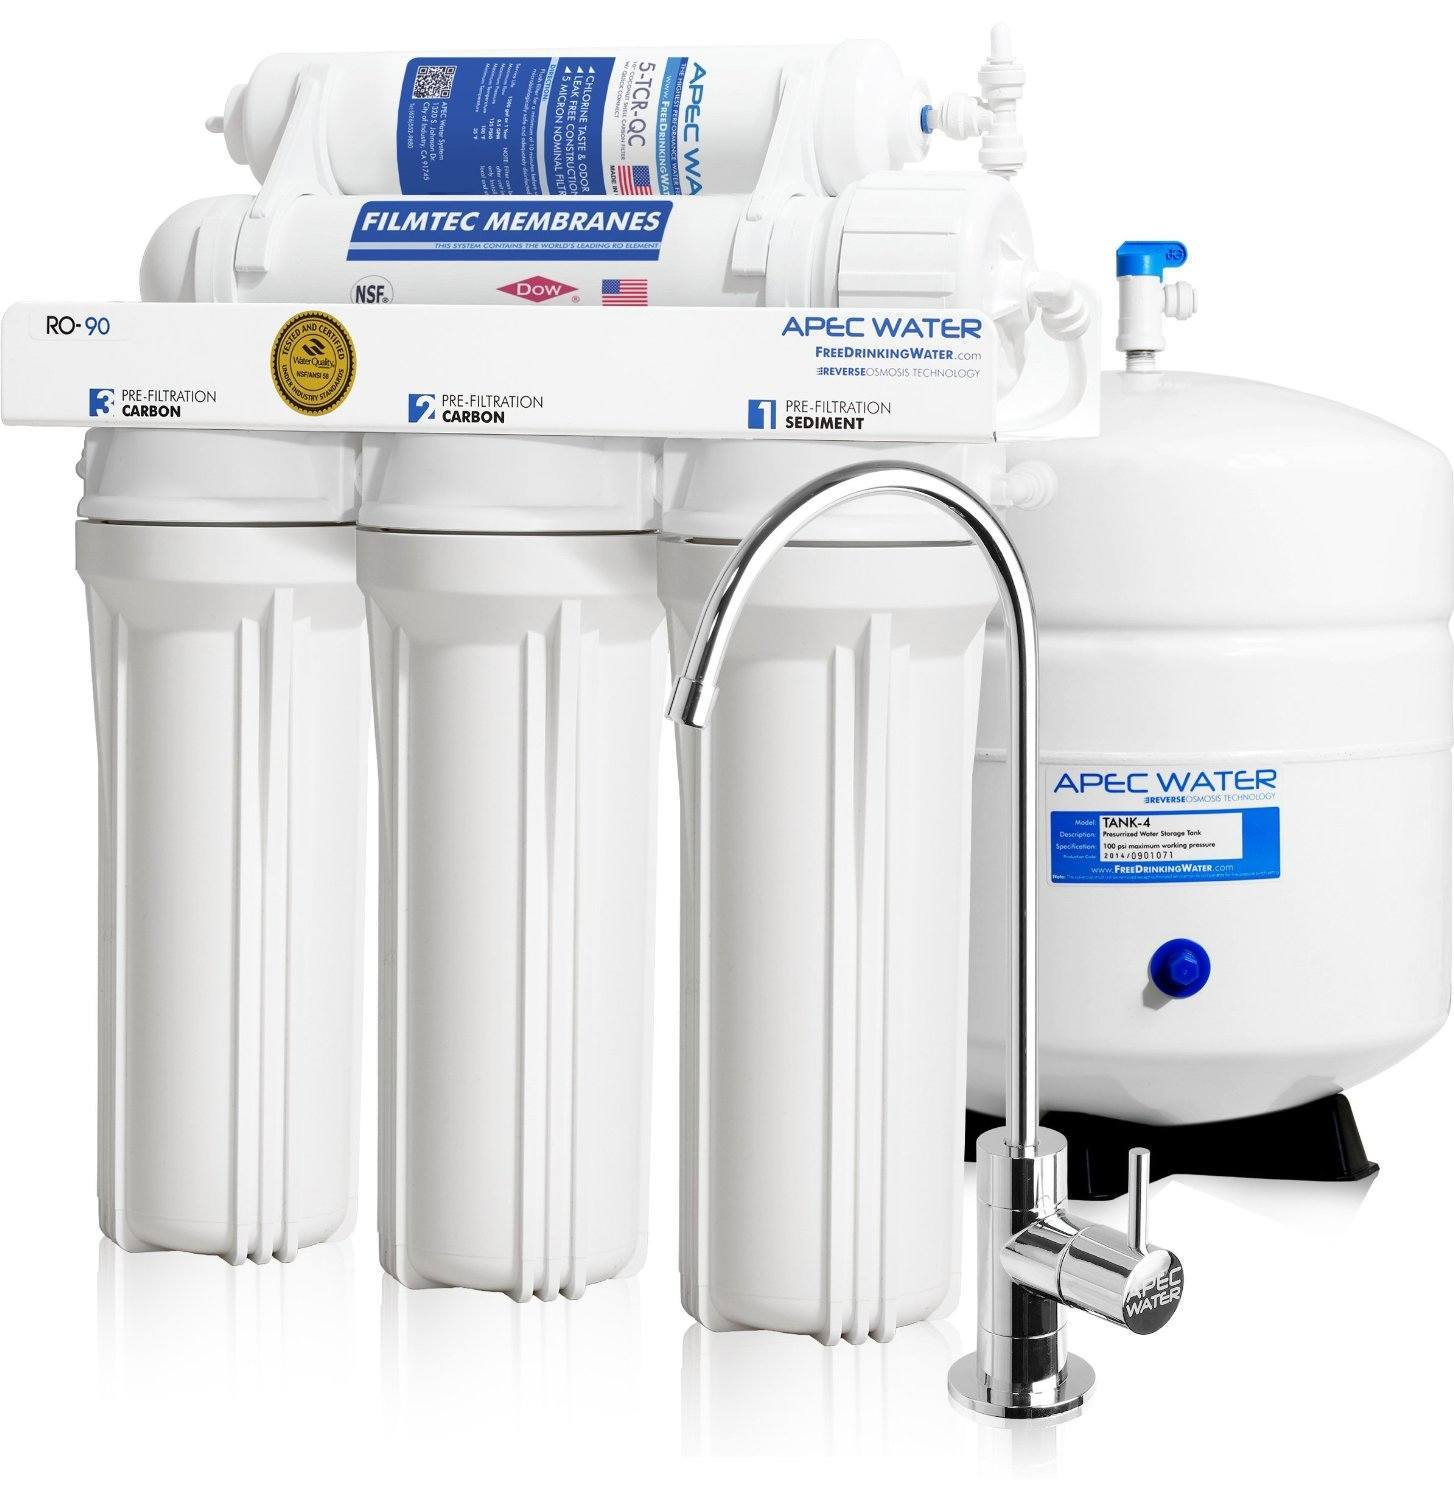 APEC Water High-Flow 90 GPD Reverse Osmosis